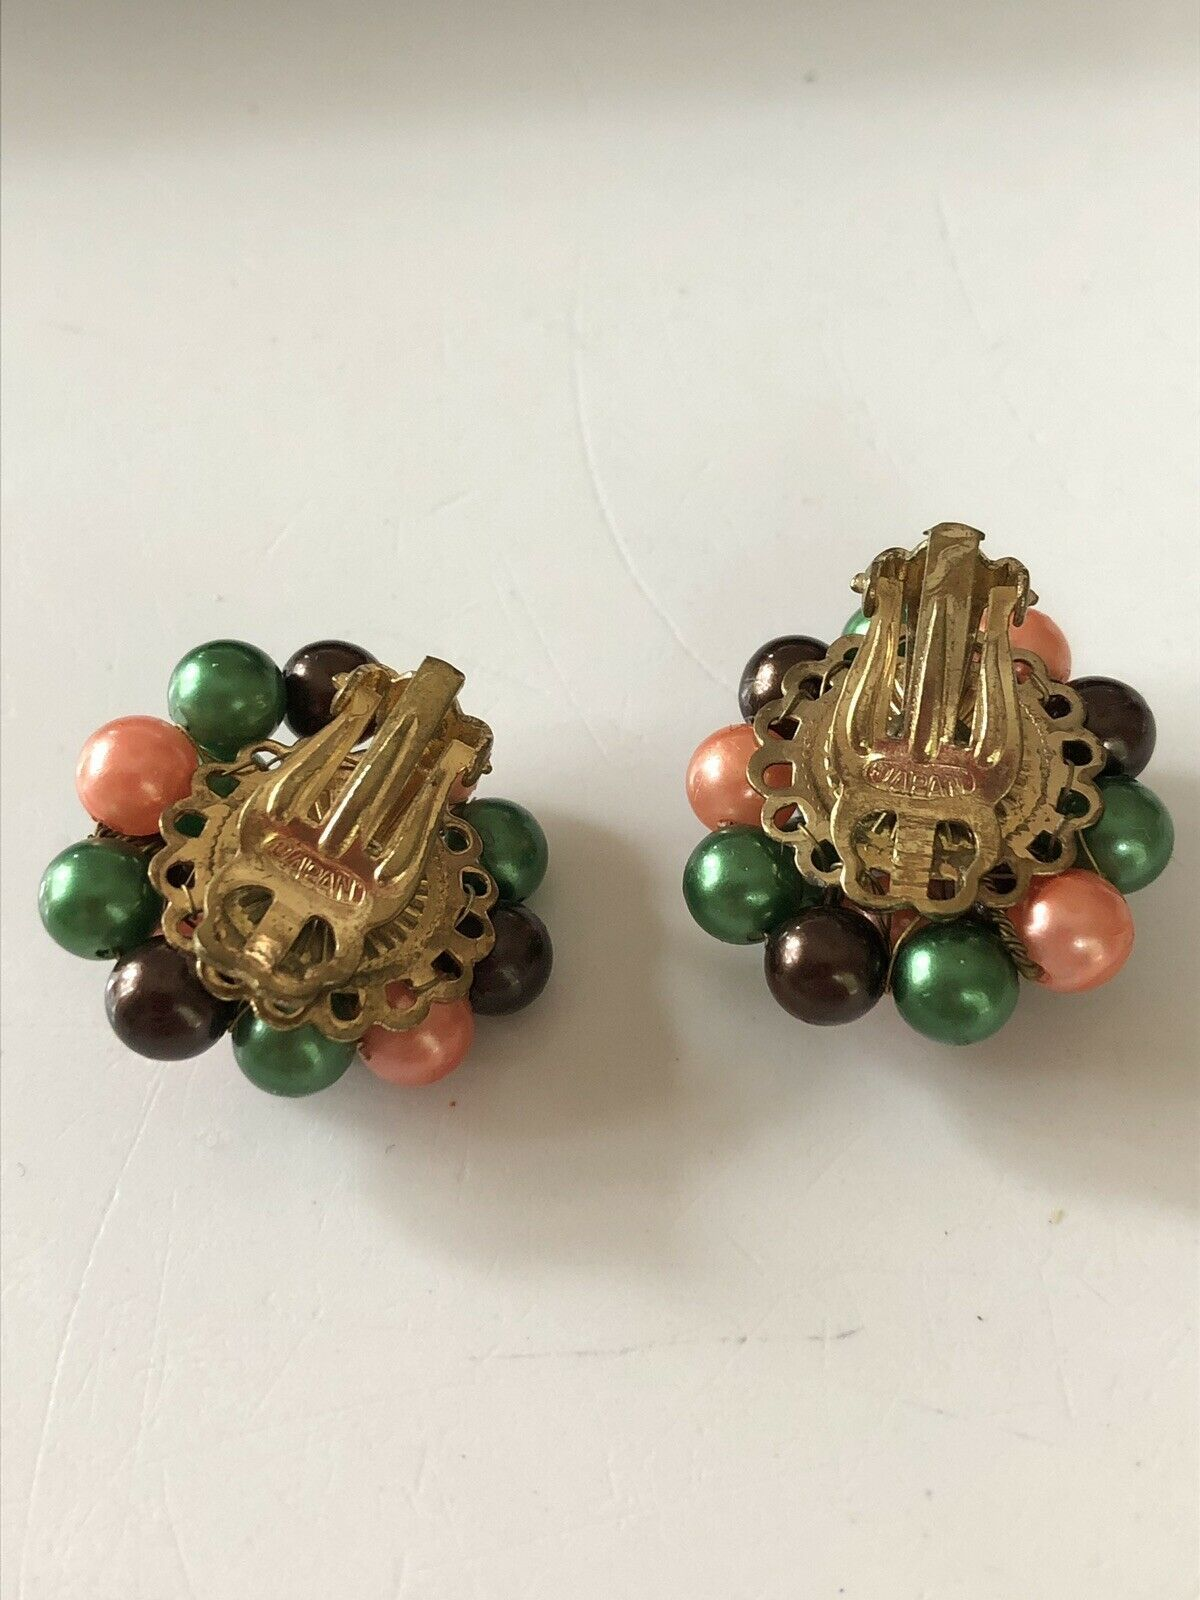 Vintage 50's Mid-Cent Green,Peach and Brown Luster Cluster Earrings Signed Japan